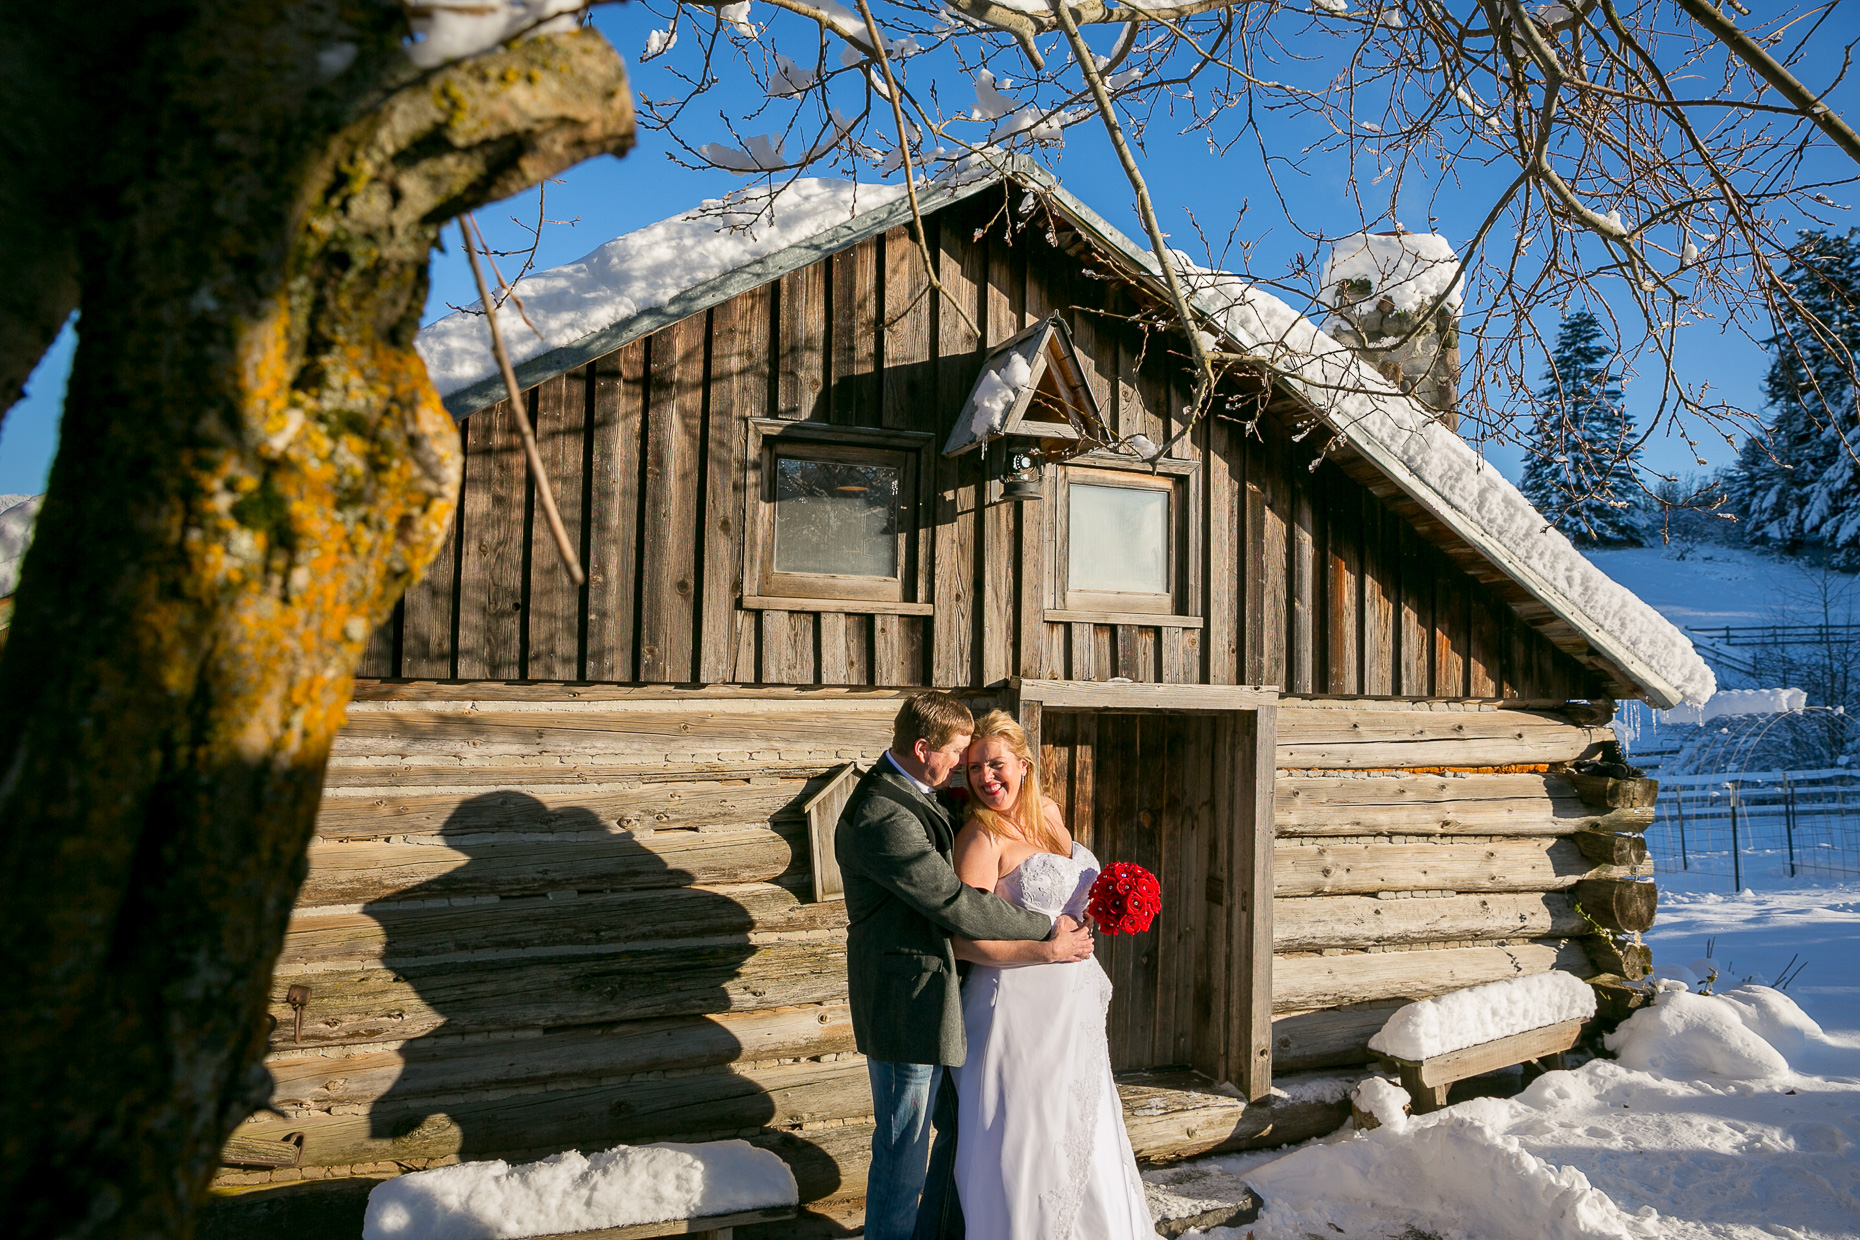 mt-hood-bed-breakfast-elopement-snow-29